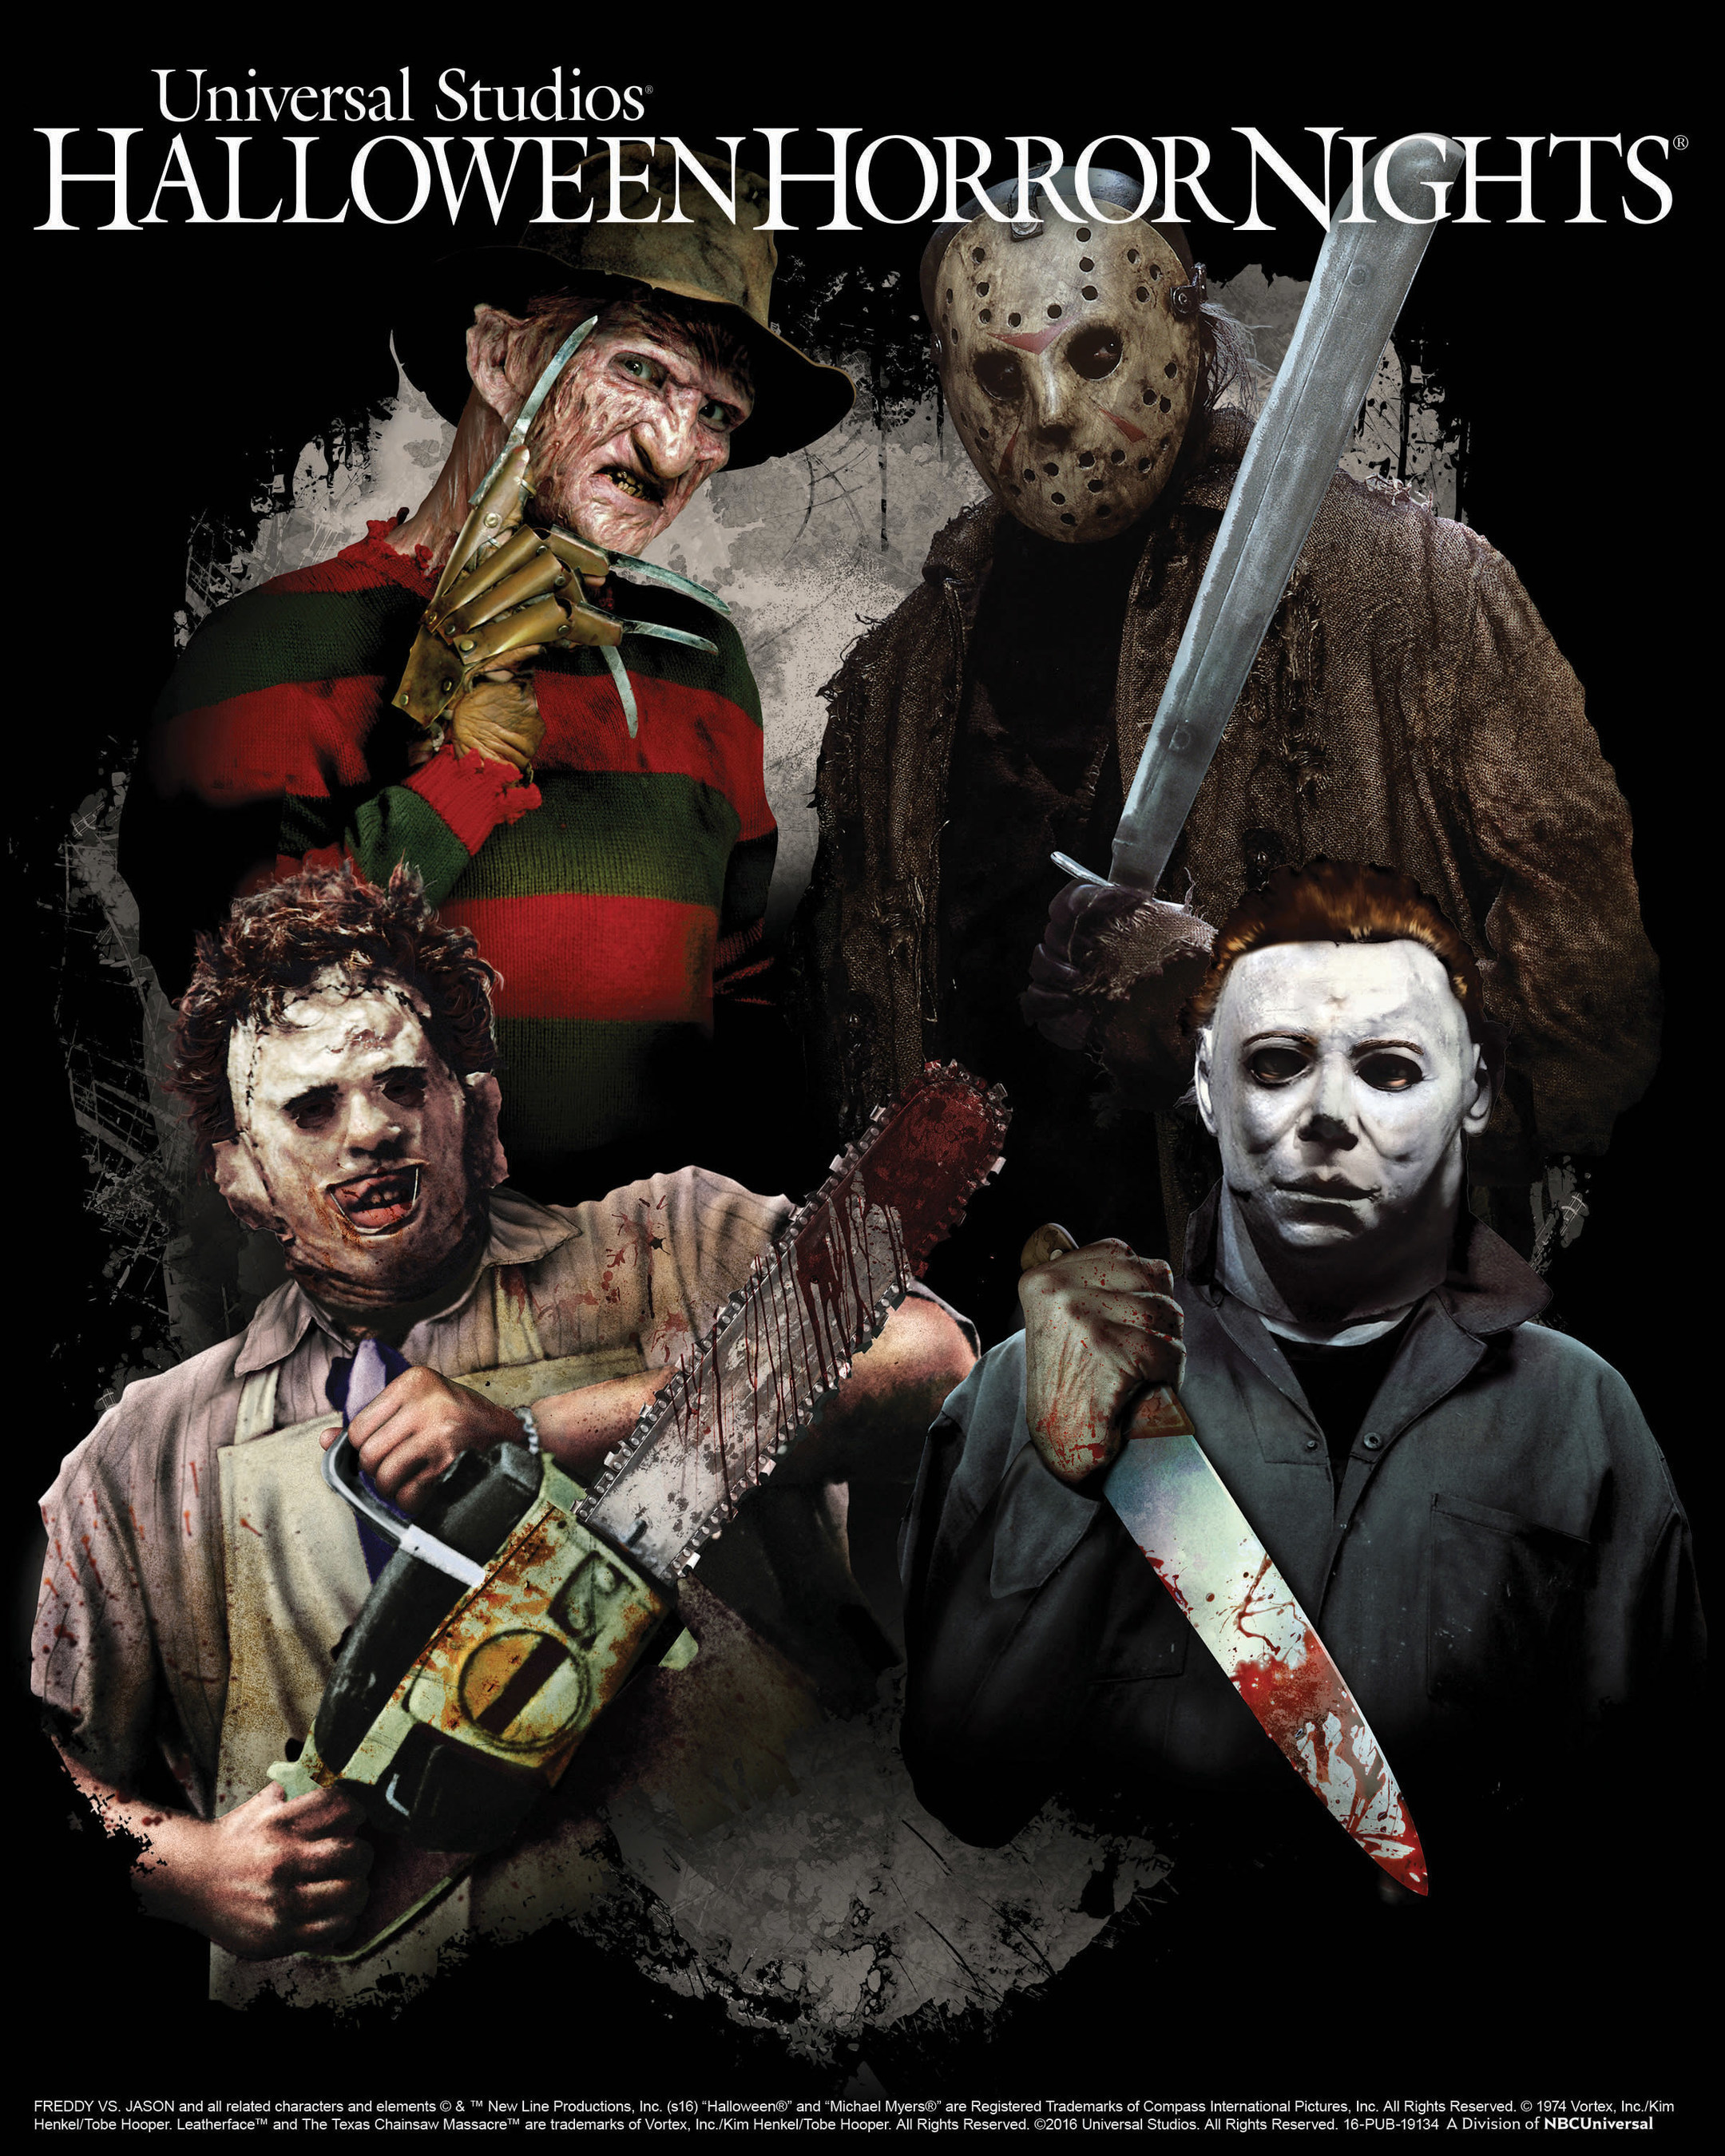 Universal Studios Hollywood Unleashes a Terrifying Trio of Slasher Films as 'Freddy vs. Jason,' 'The Texas Chainsaw Massacre' and 'Halloween' Stab Through 'Hallowe